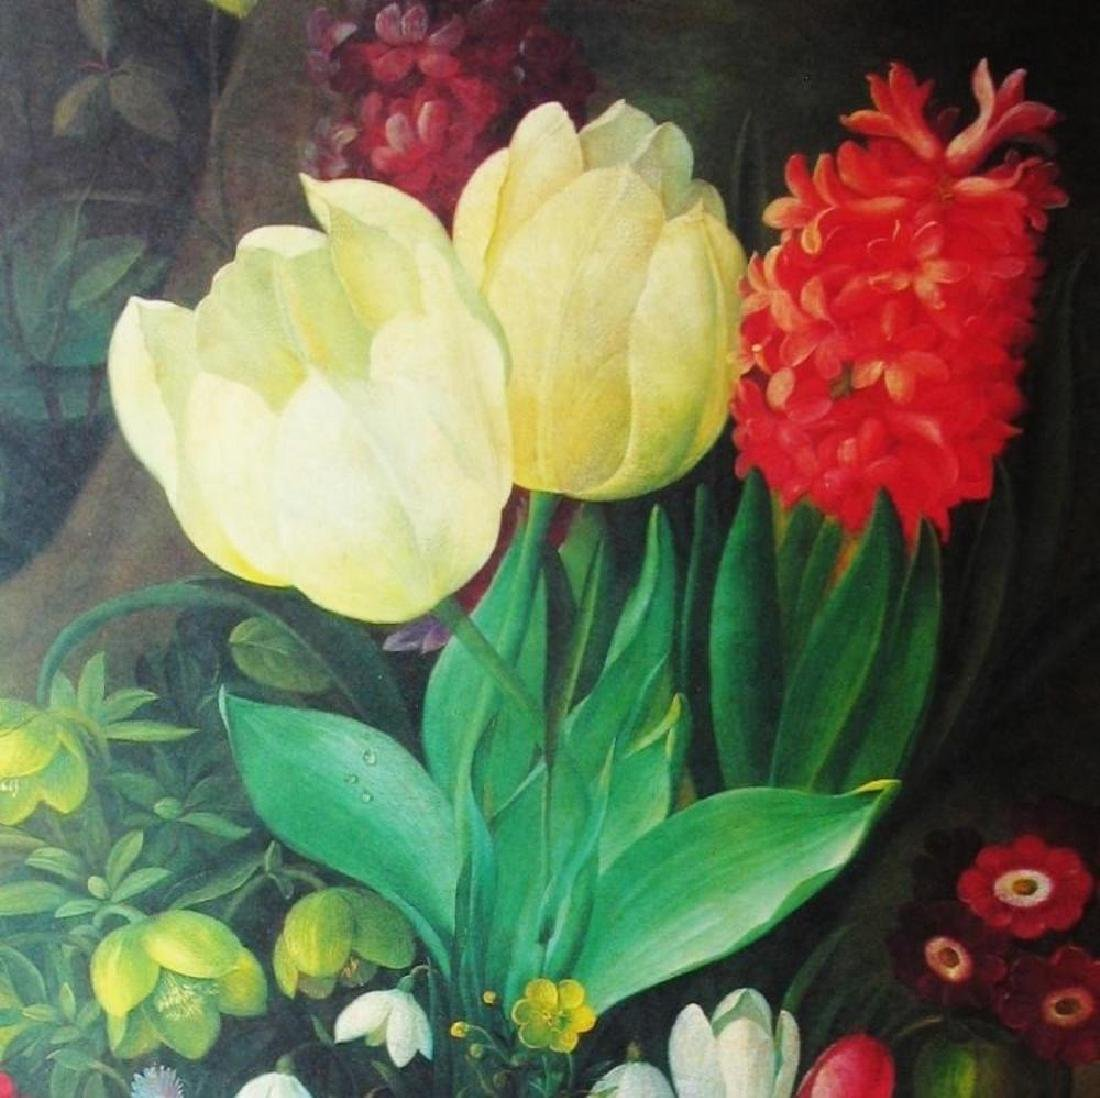 1998 Tulips & Hyacinth Litho On Arches Paper - 3